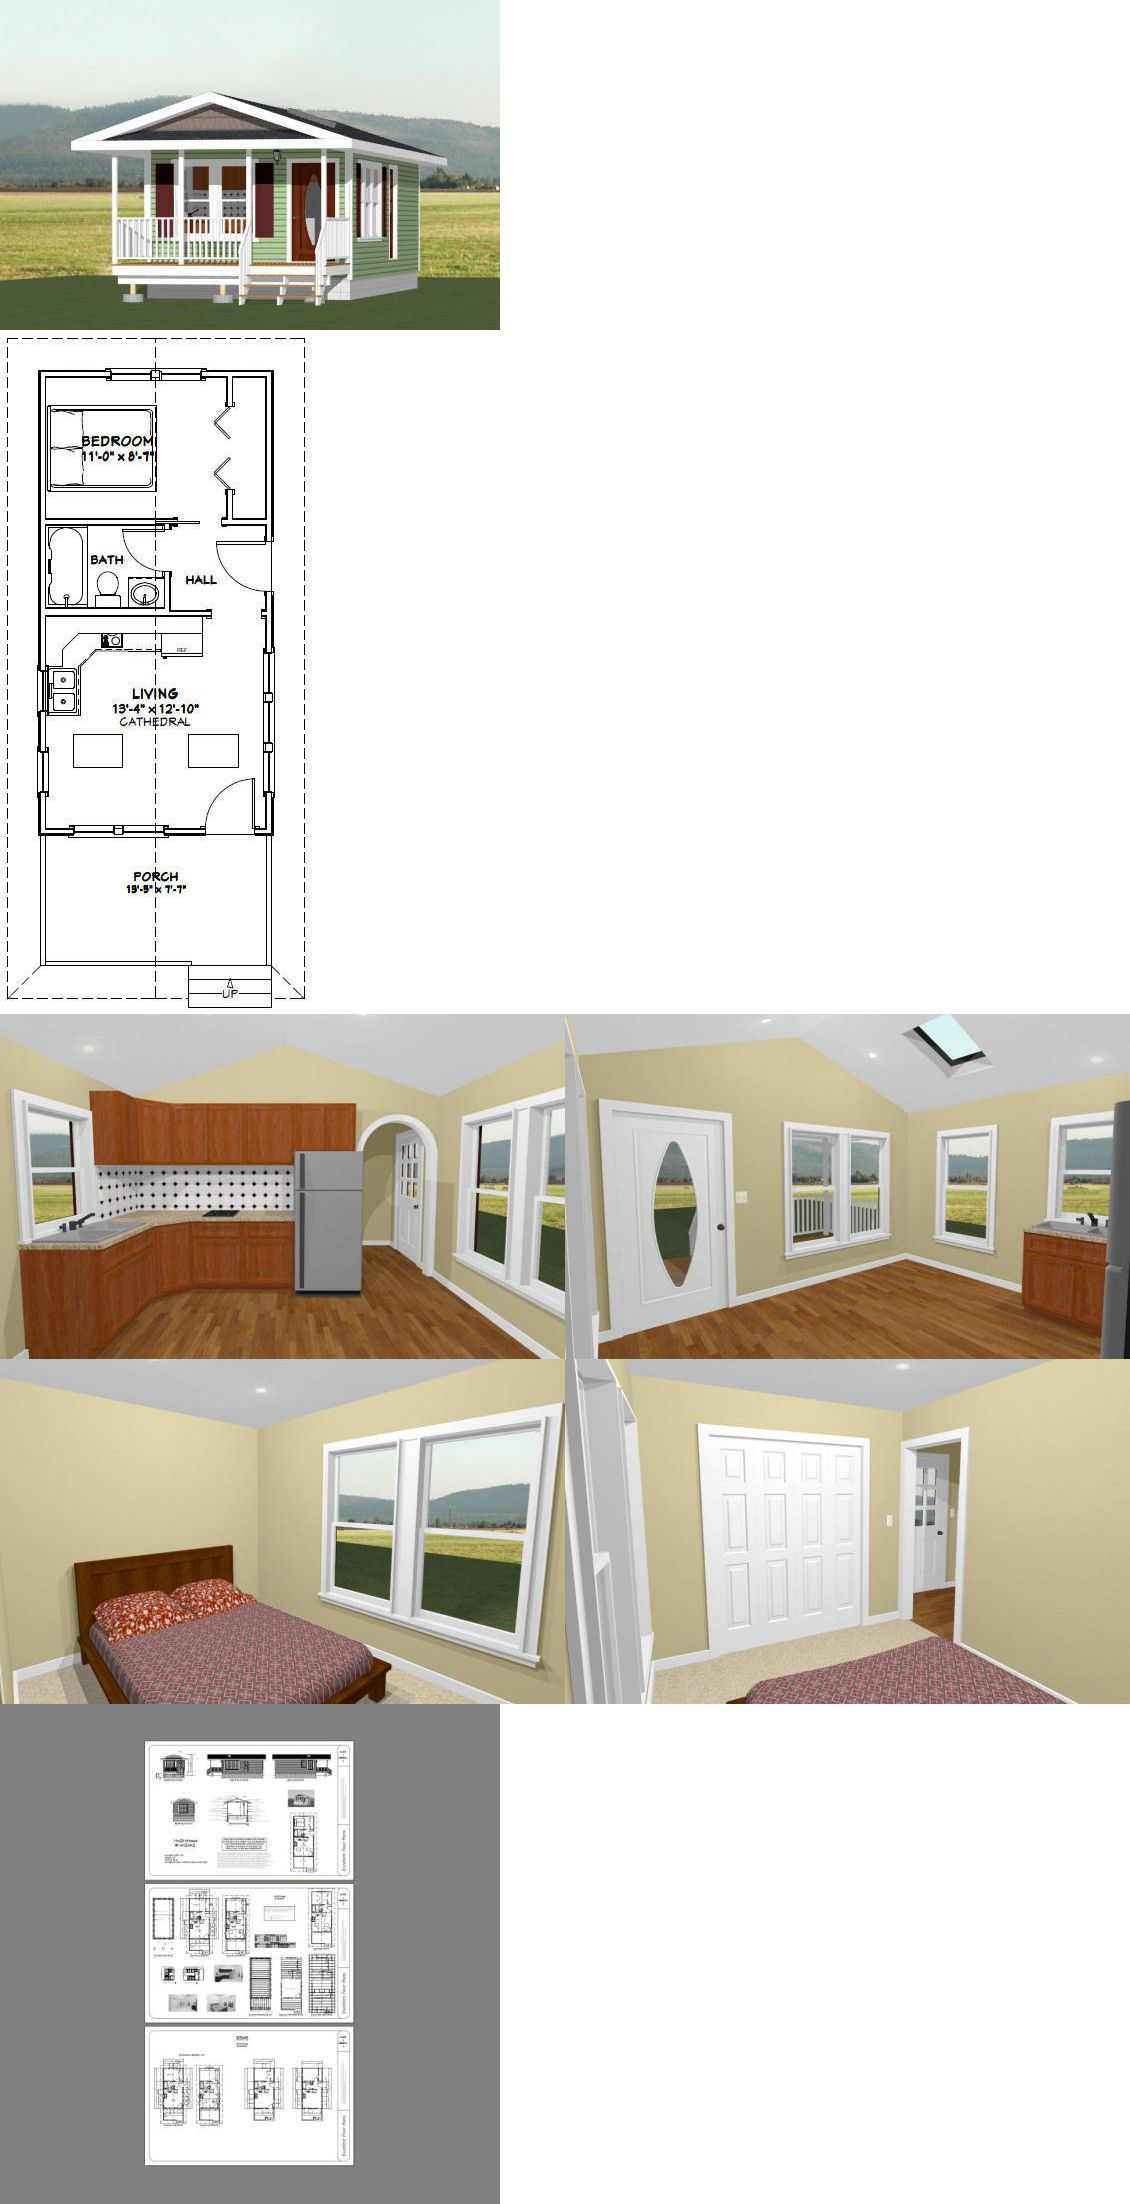 Building plans and blueprints  tiny house sq ft also rh pinterest